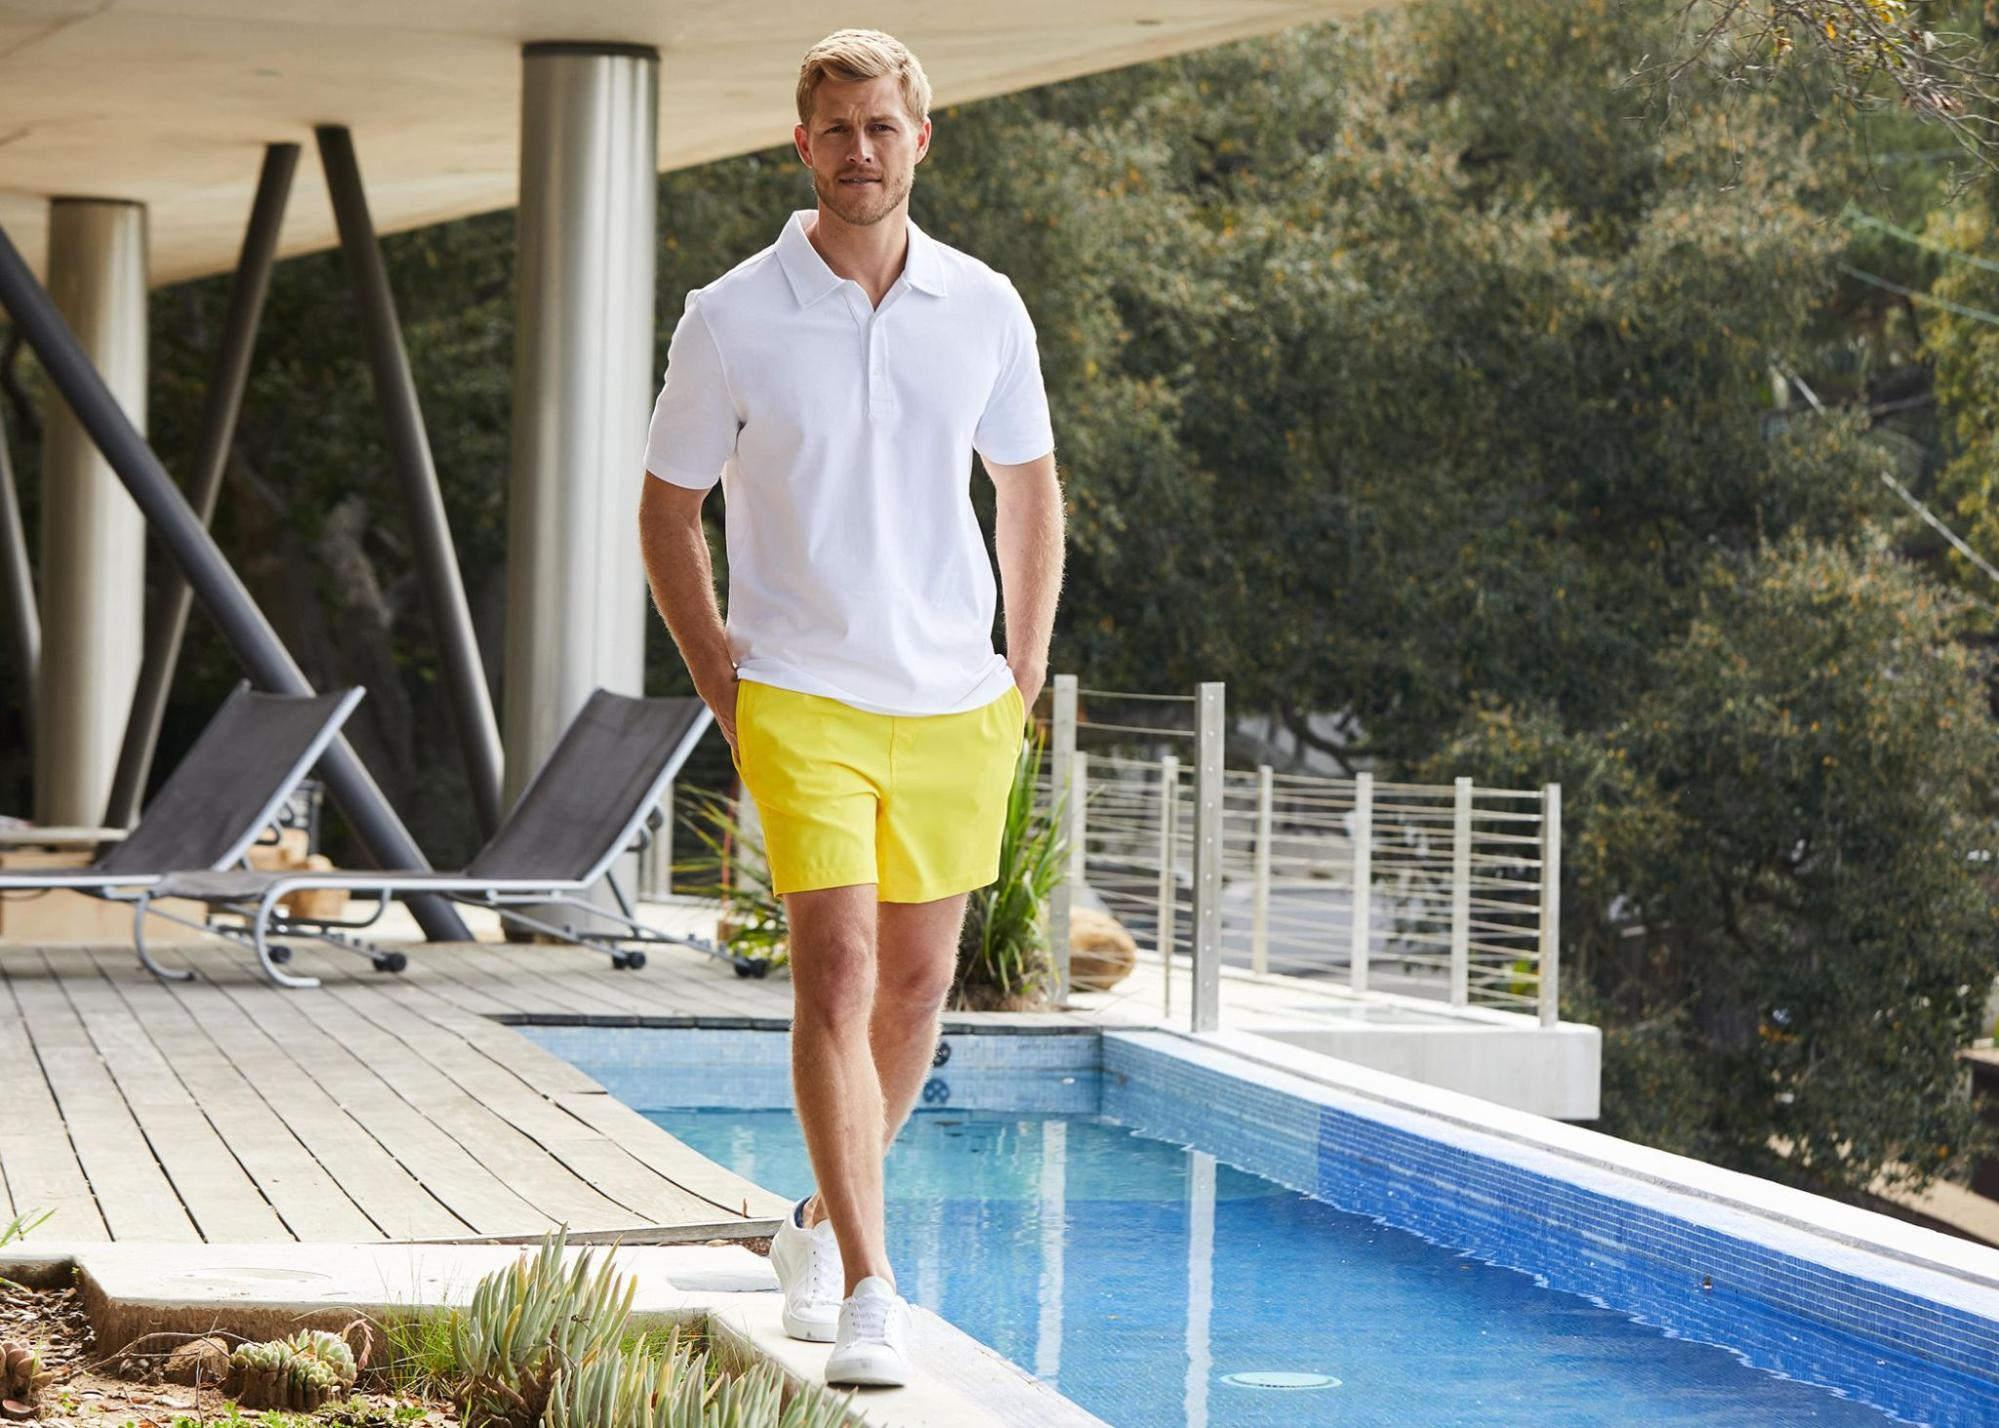 A male model in a white polo and yellow shorts standing next to a pool.